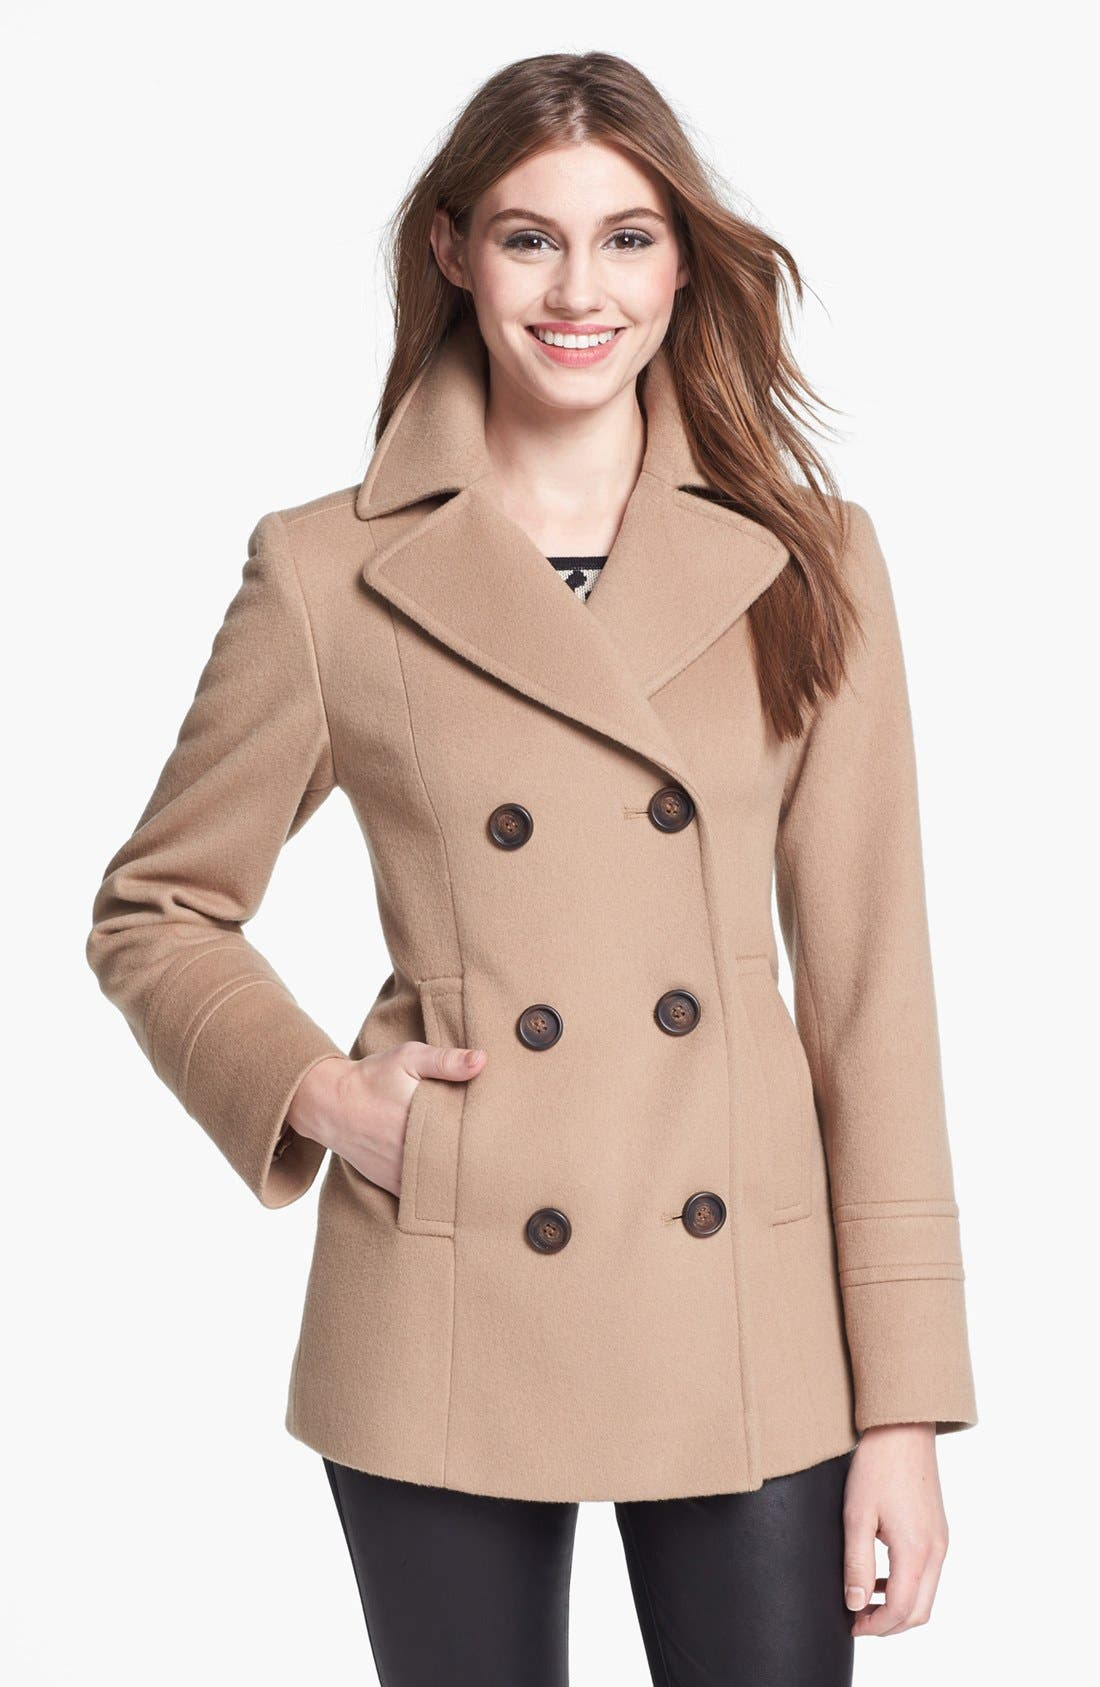 Alternate Image 1 Selected - Fleurette Double Breasted Wool Peacoat